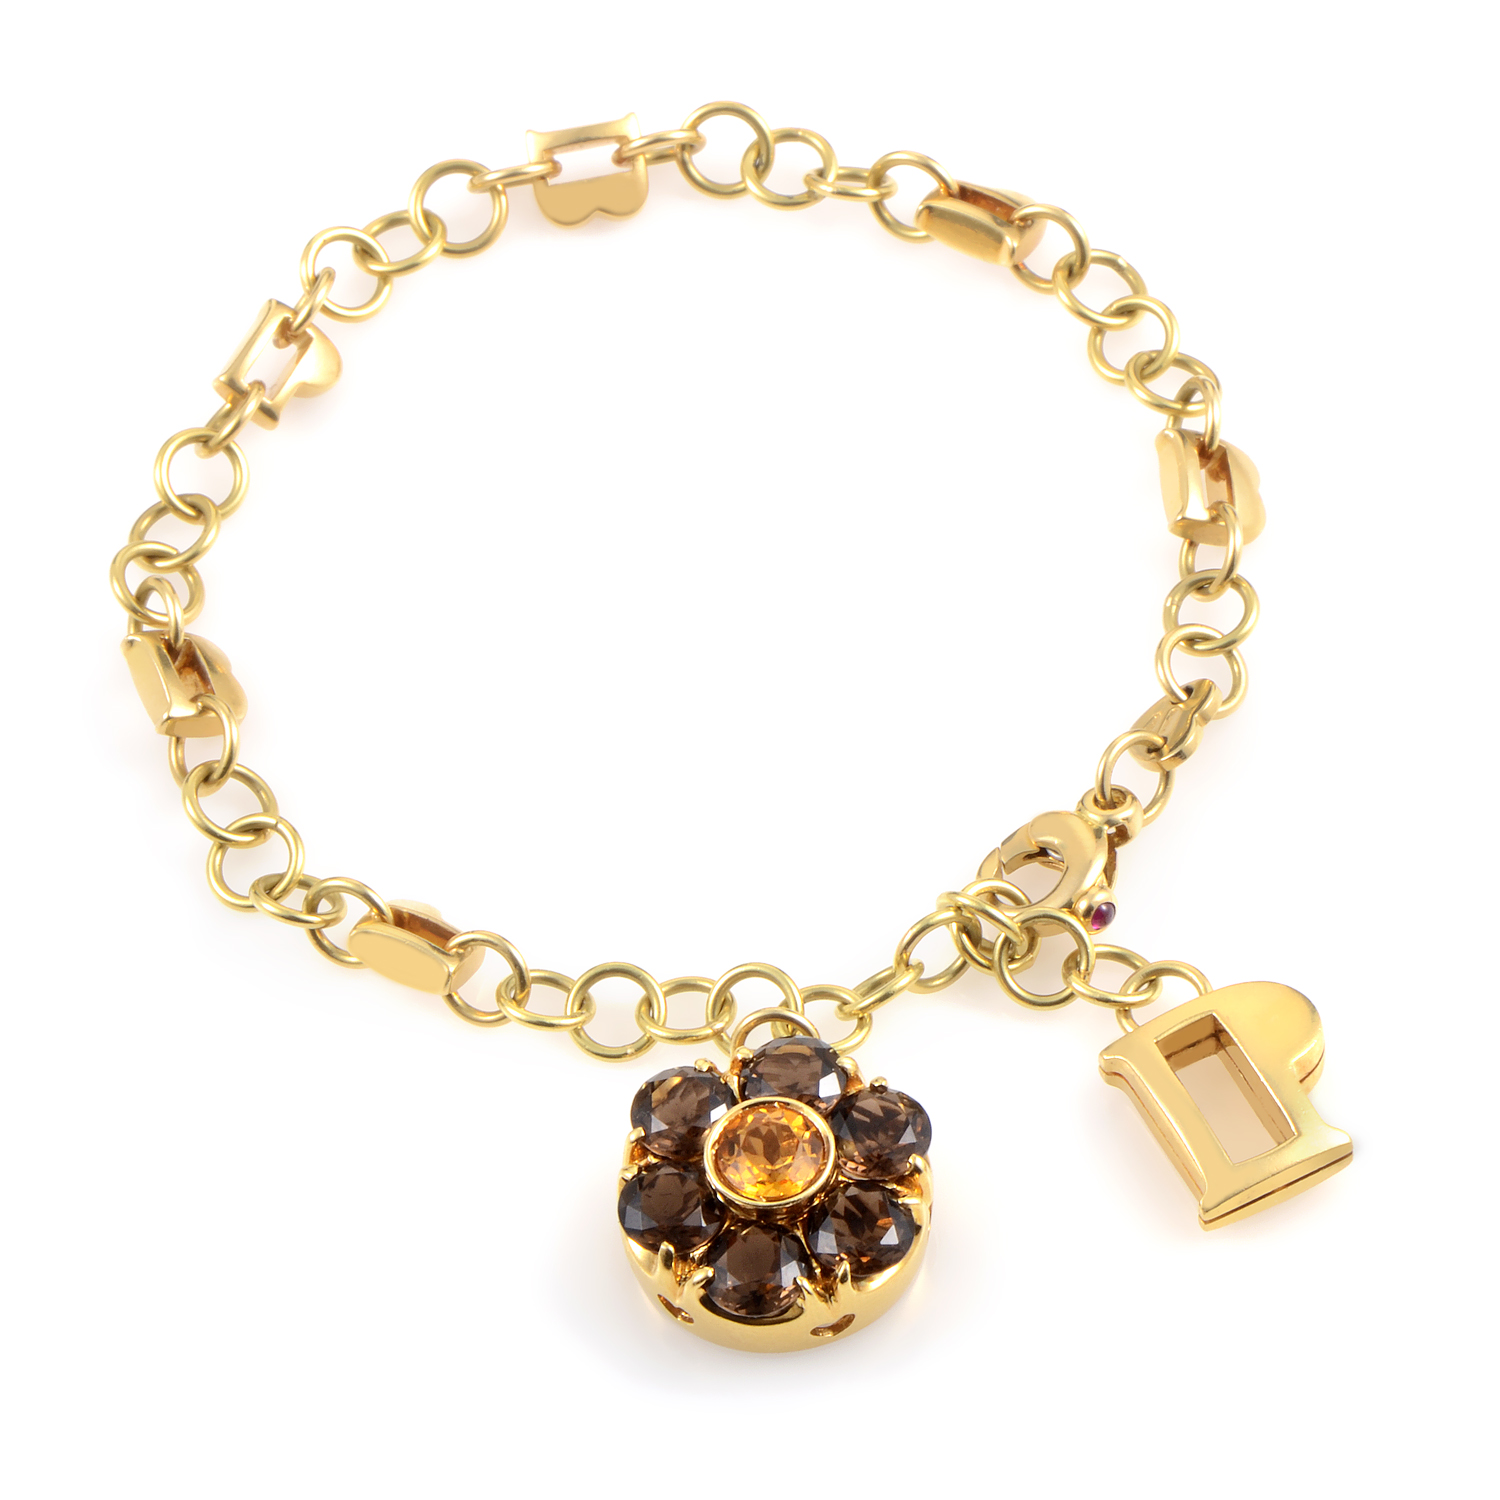 18K Yellow Gold Citrine & Smoky Quartz Floral Charm Bracelet